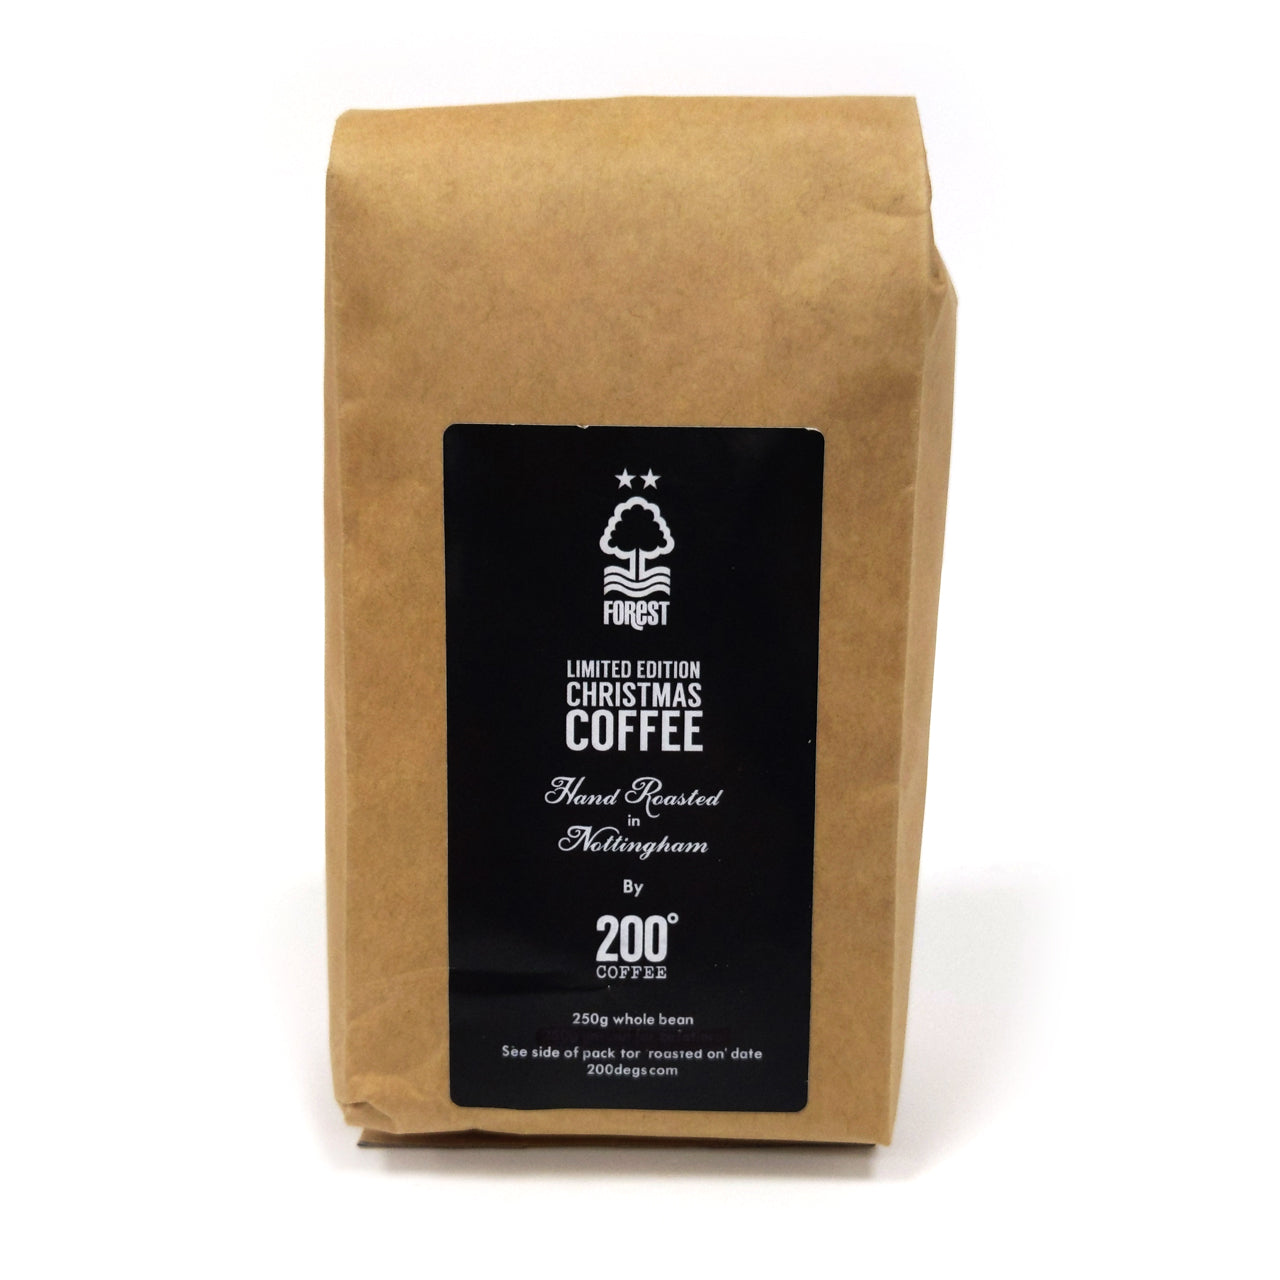 NFFC 200 Degrees Ground Coffee 250g - Nottingham Forest